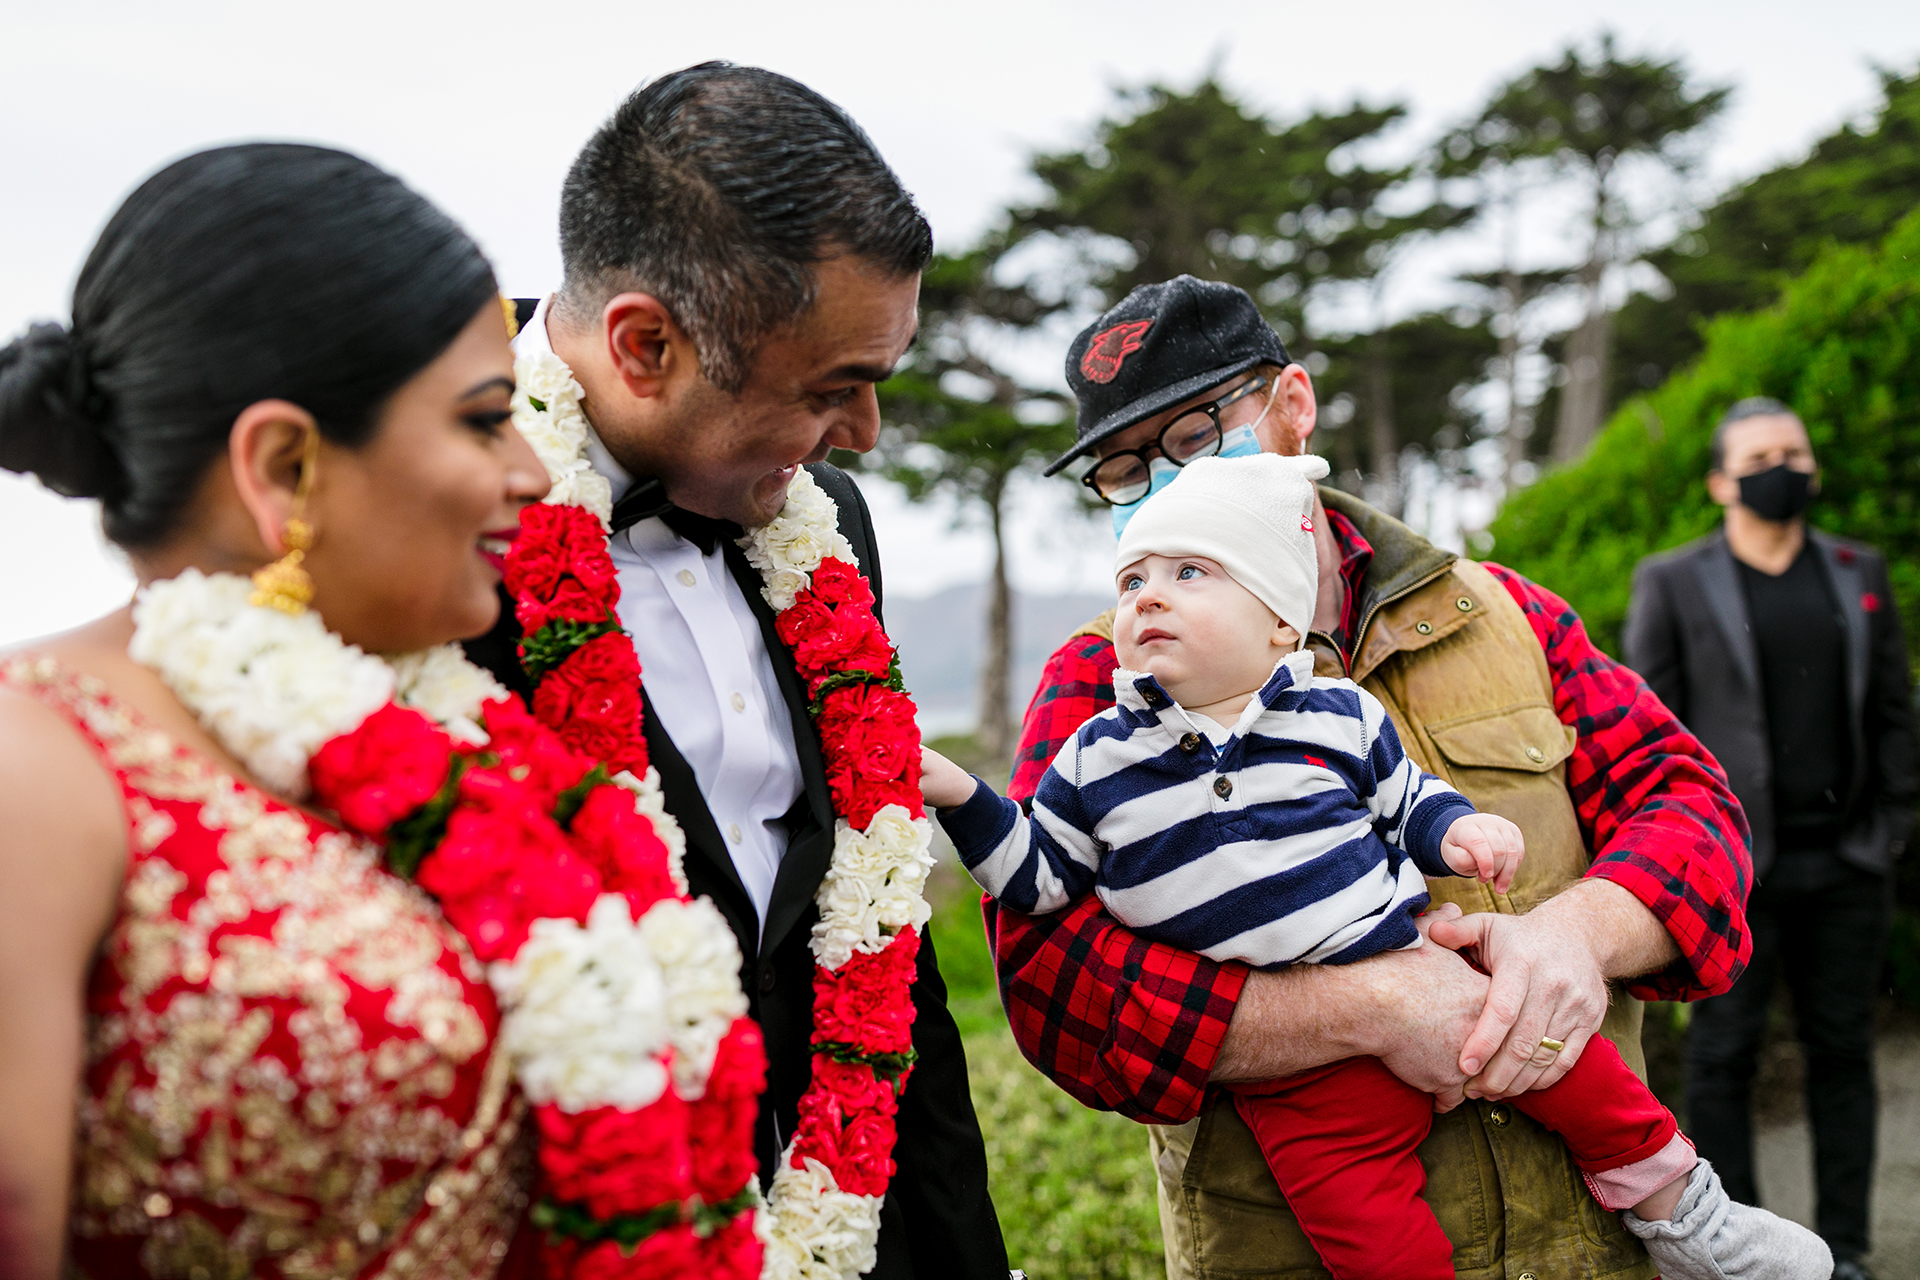 Dramatic Overlook Wedding Pic at Golden Gate | The happy couple takes a few minutes to greet guests